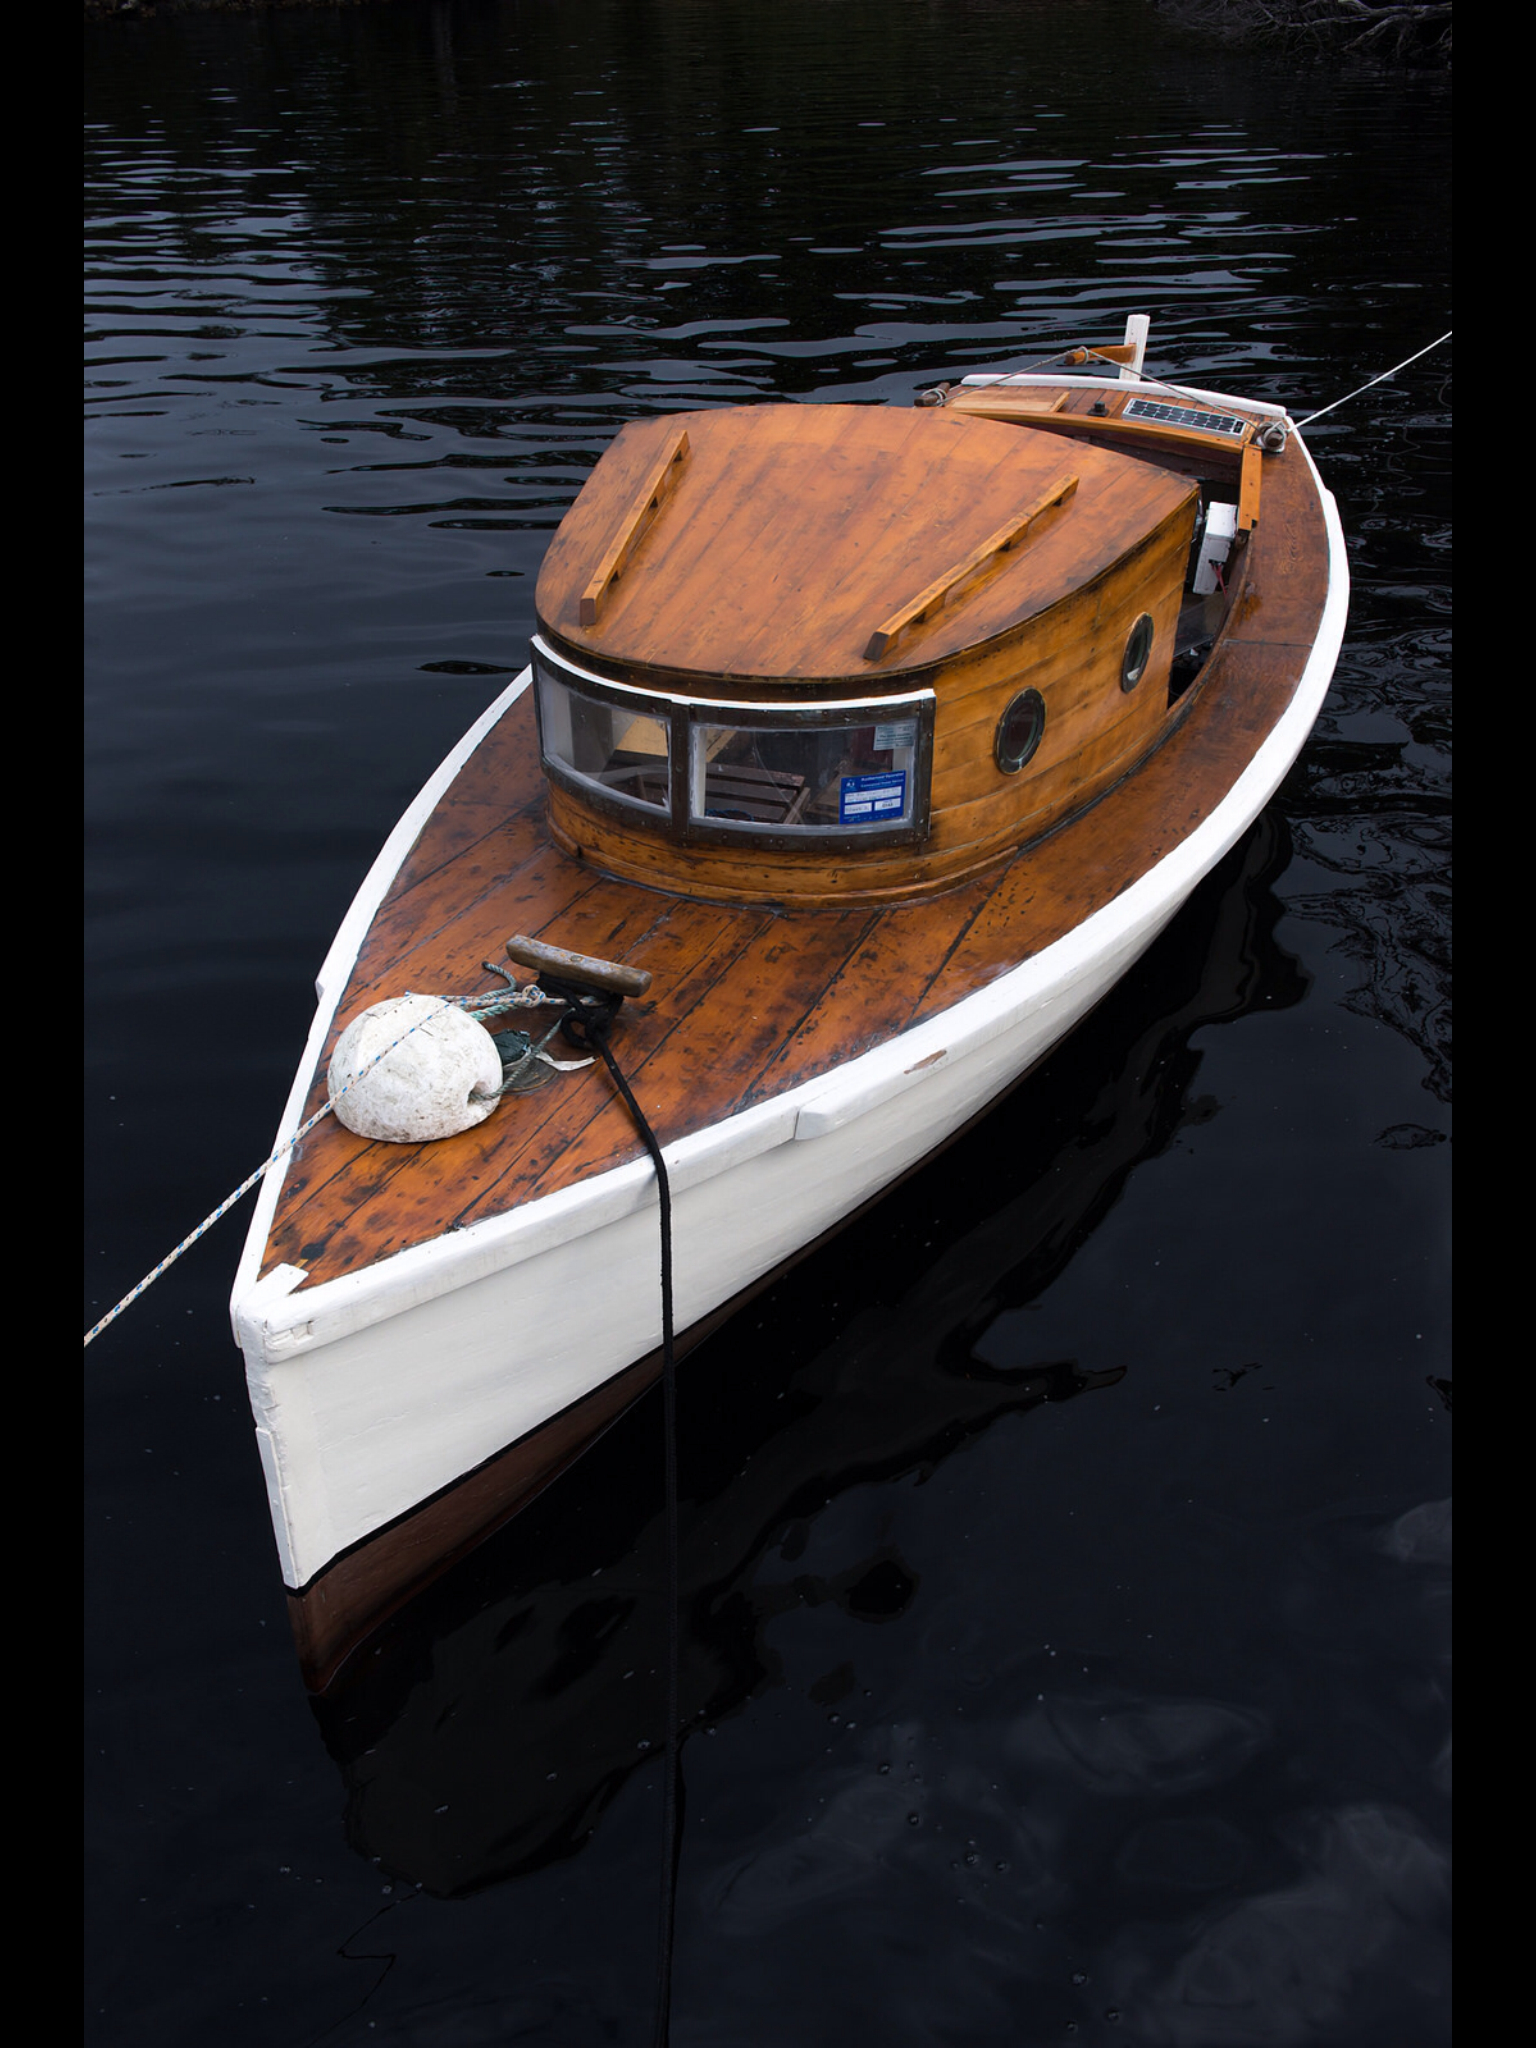 Pin by Vk7nik on Wooden boats | Build your own boat, Boat ...